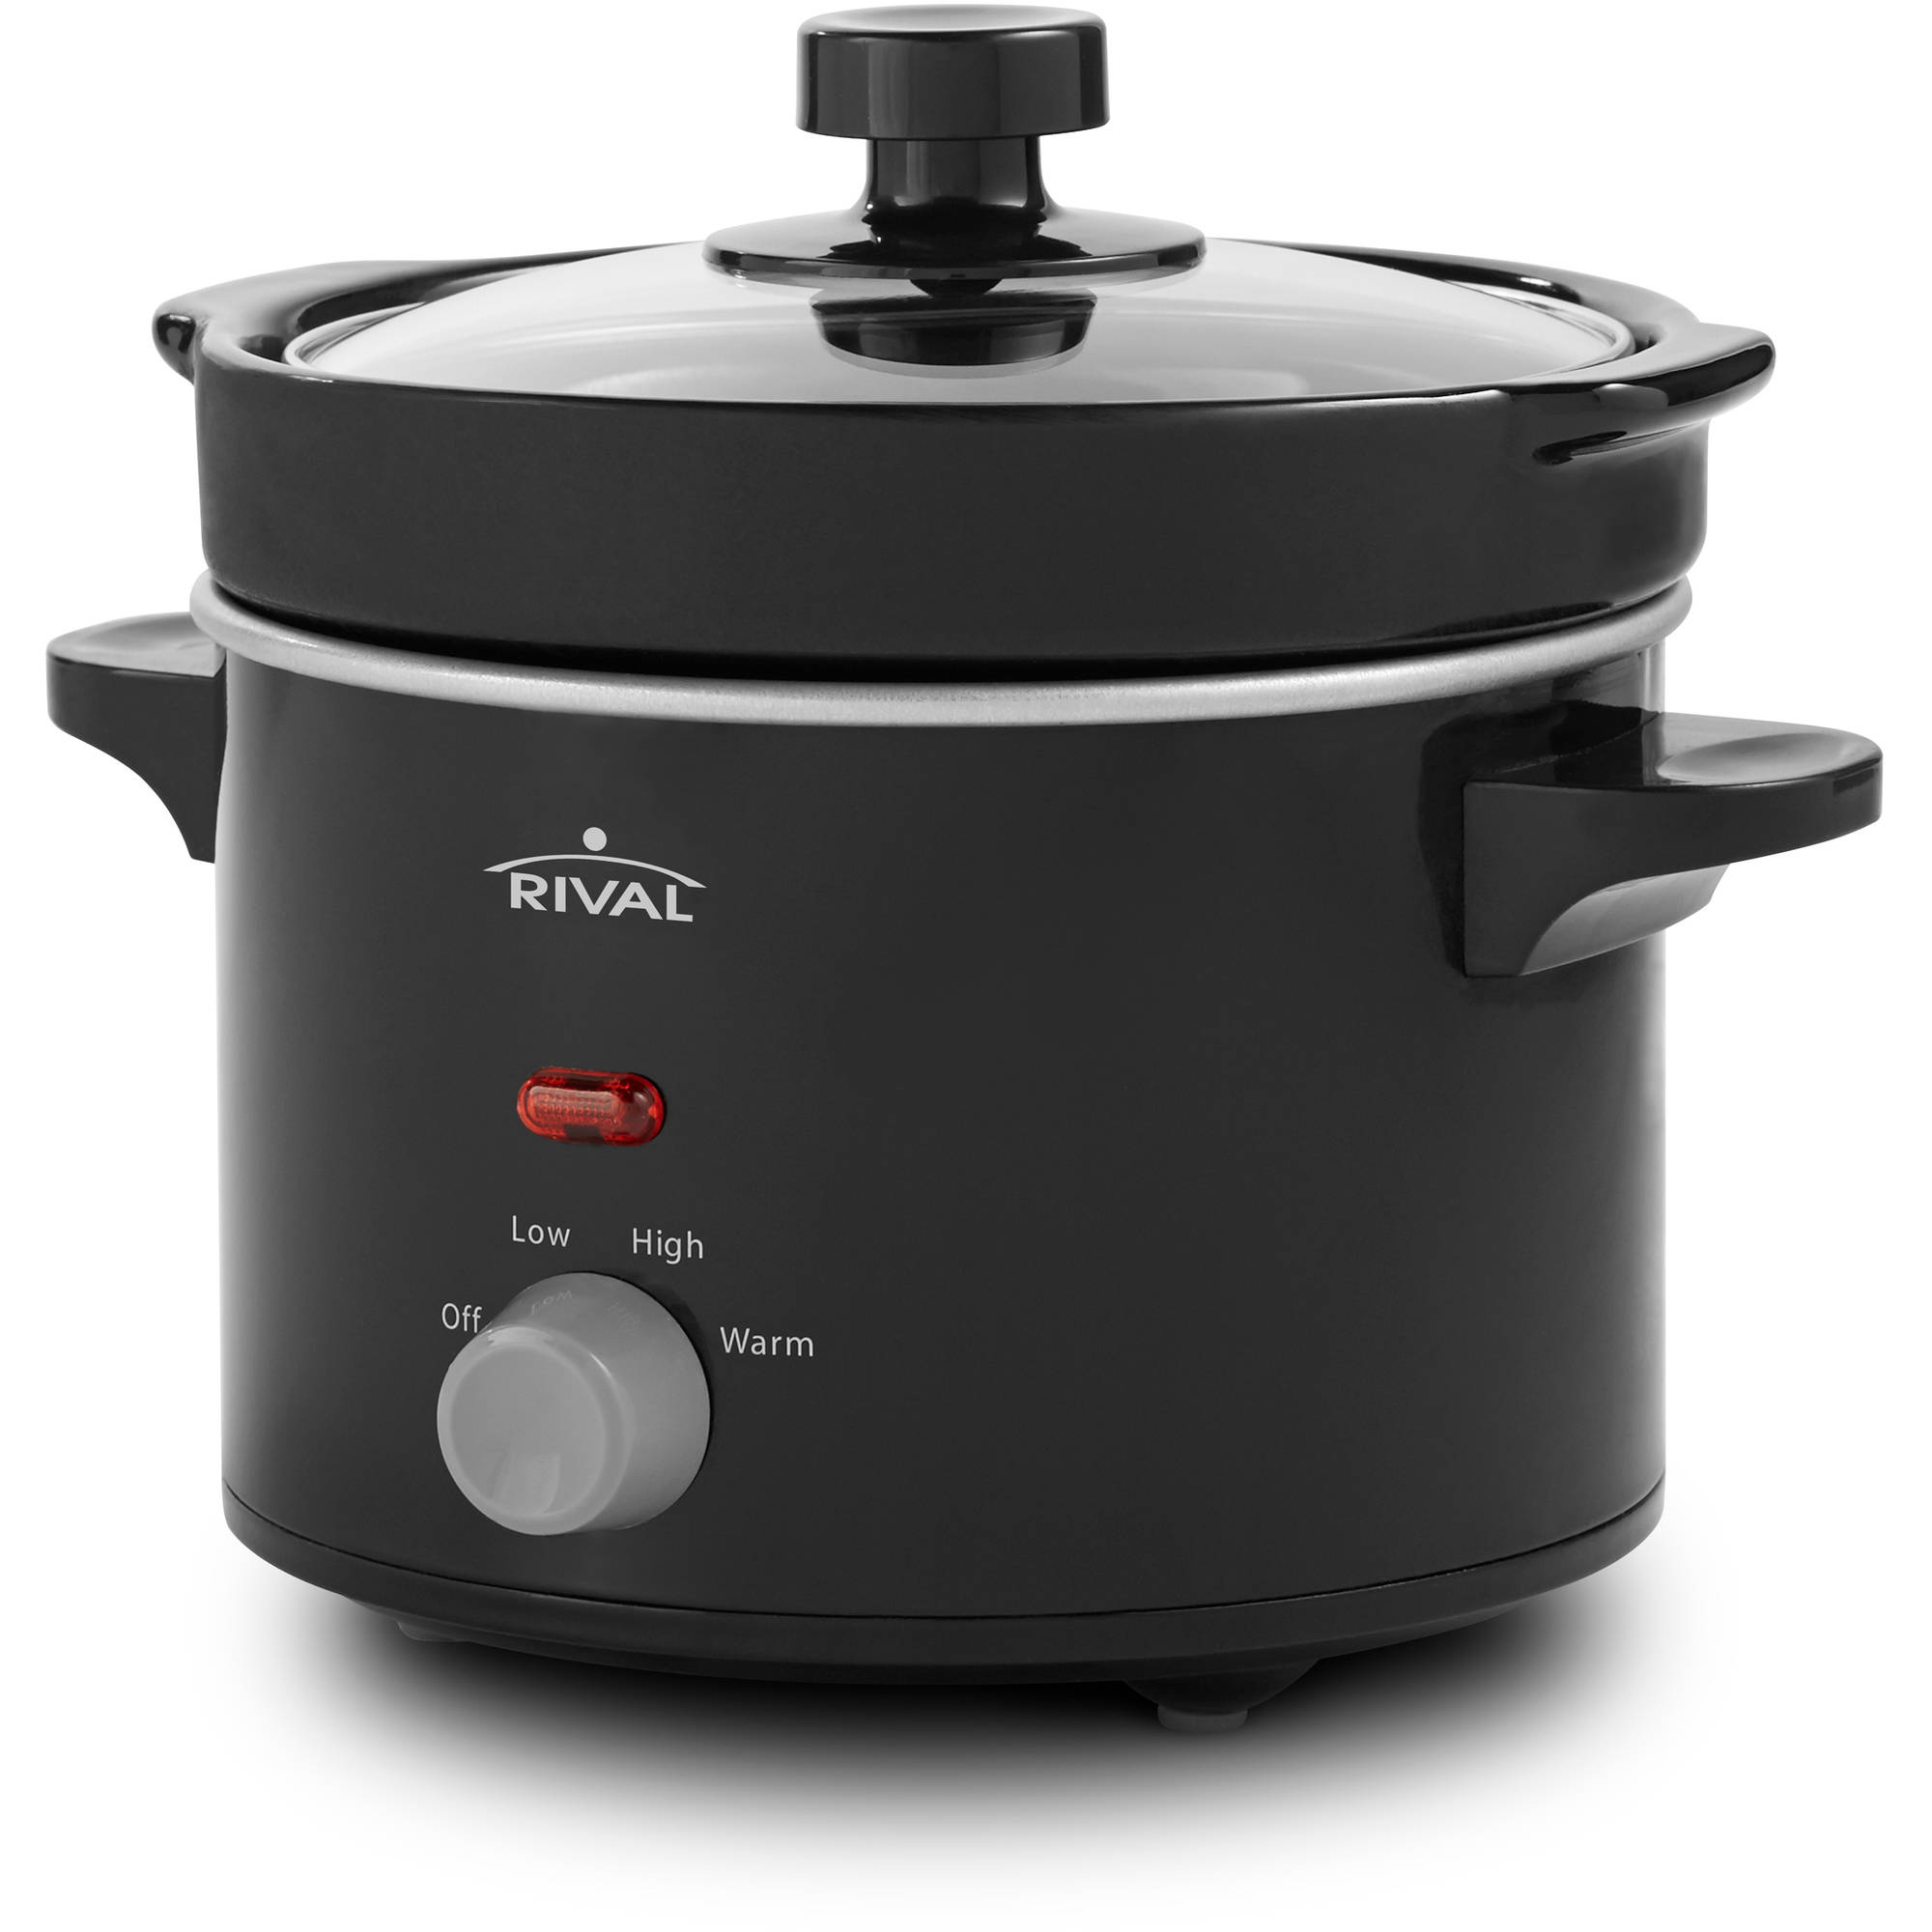 Rival 2-Quart Slow Cooker, Black